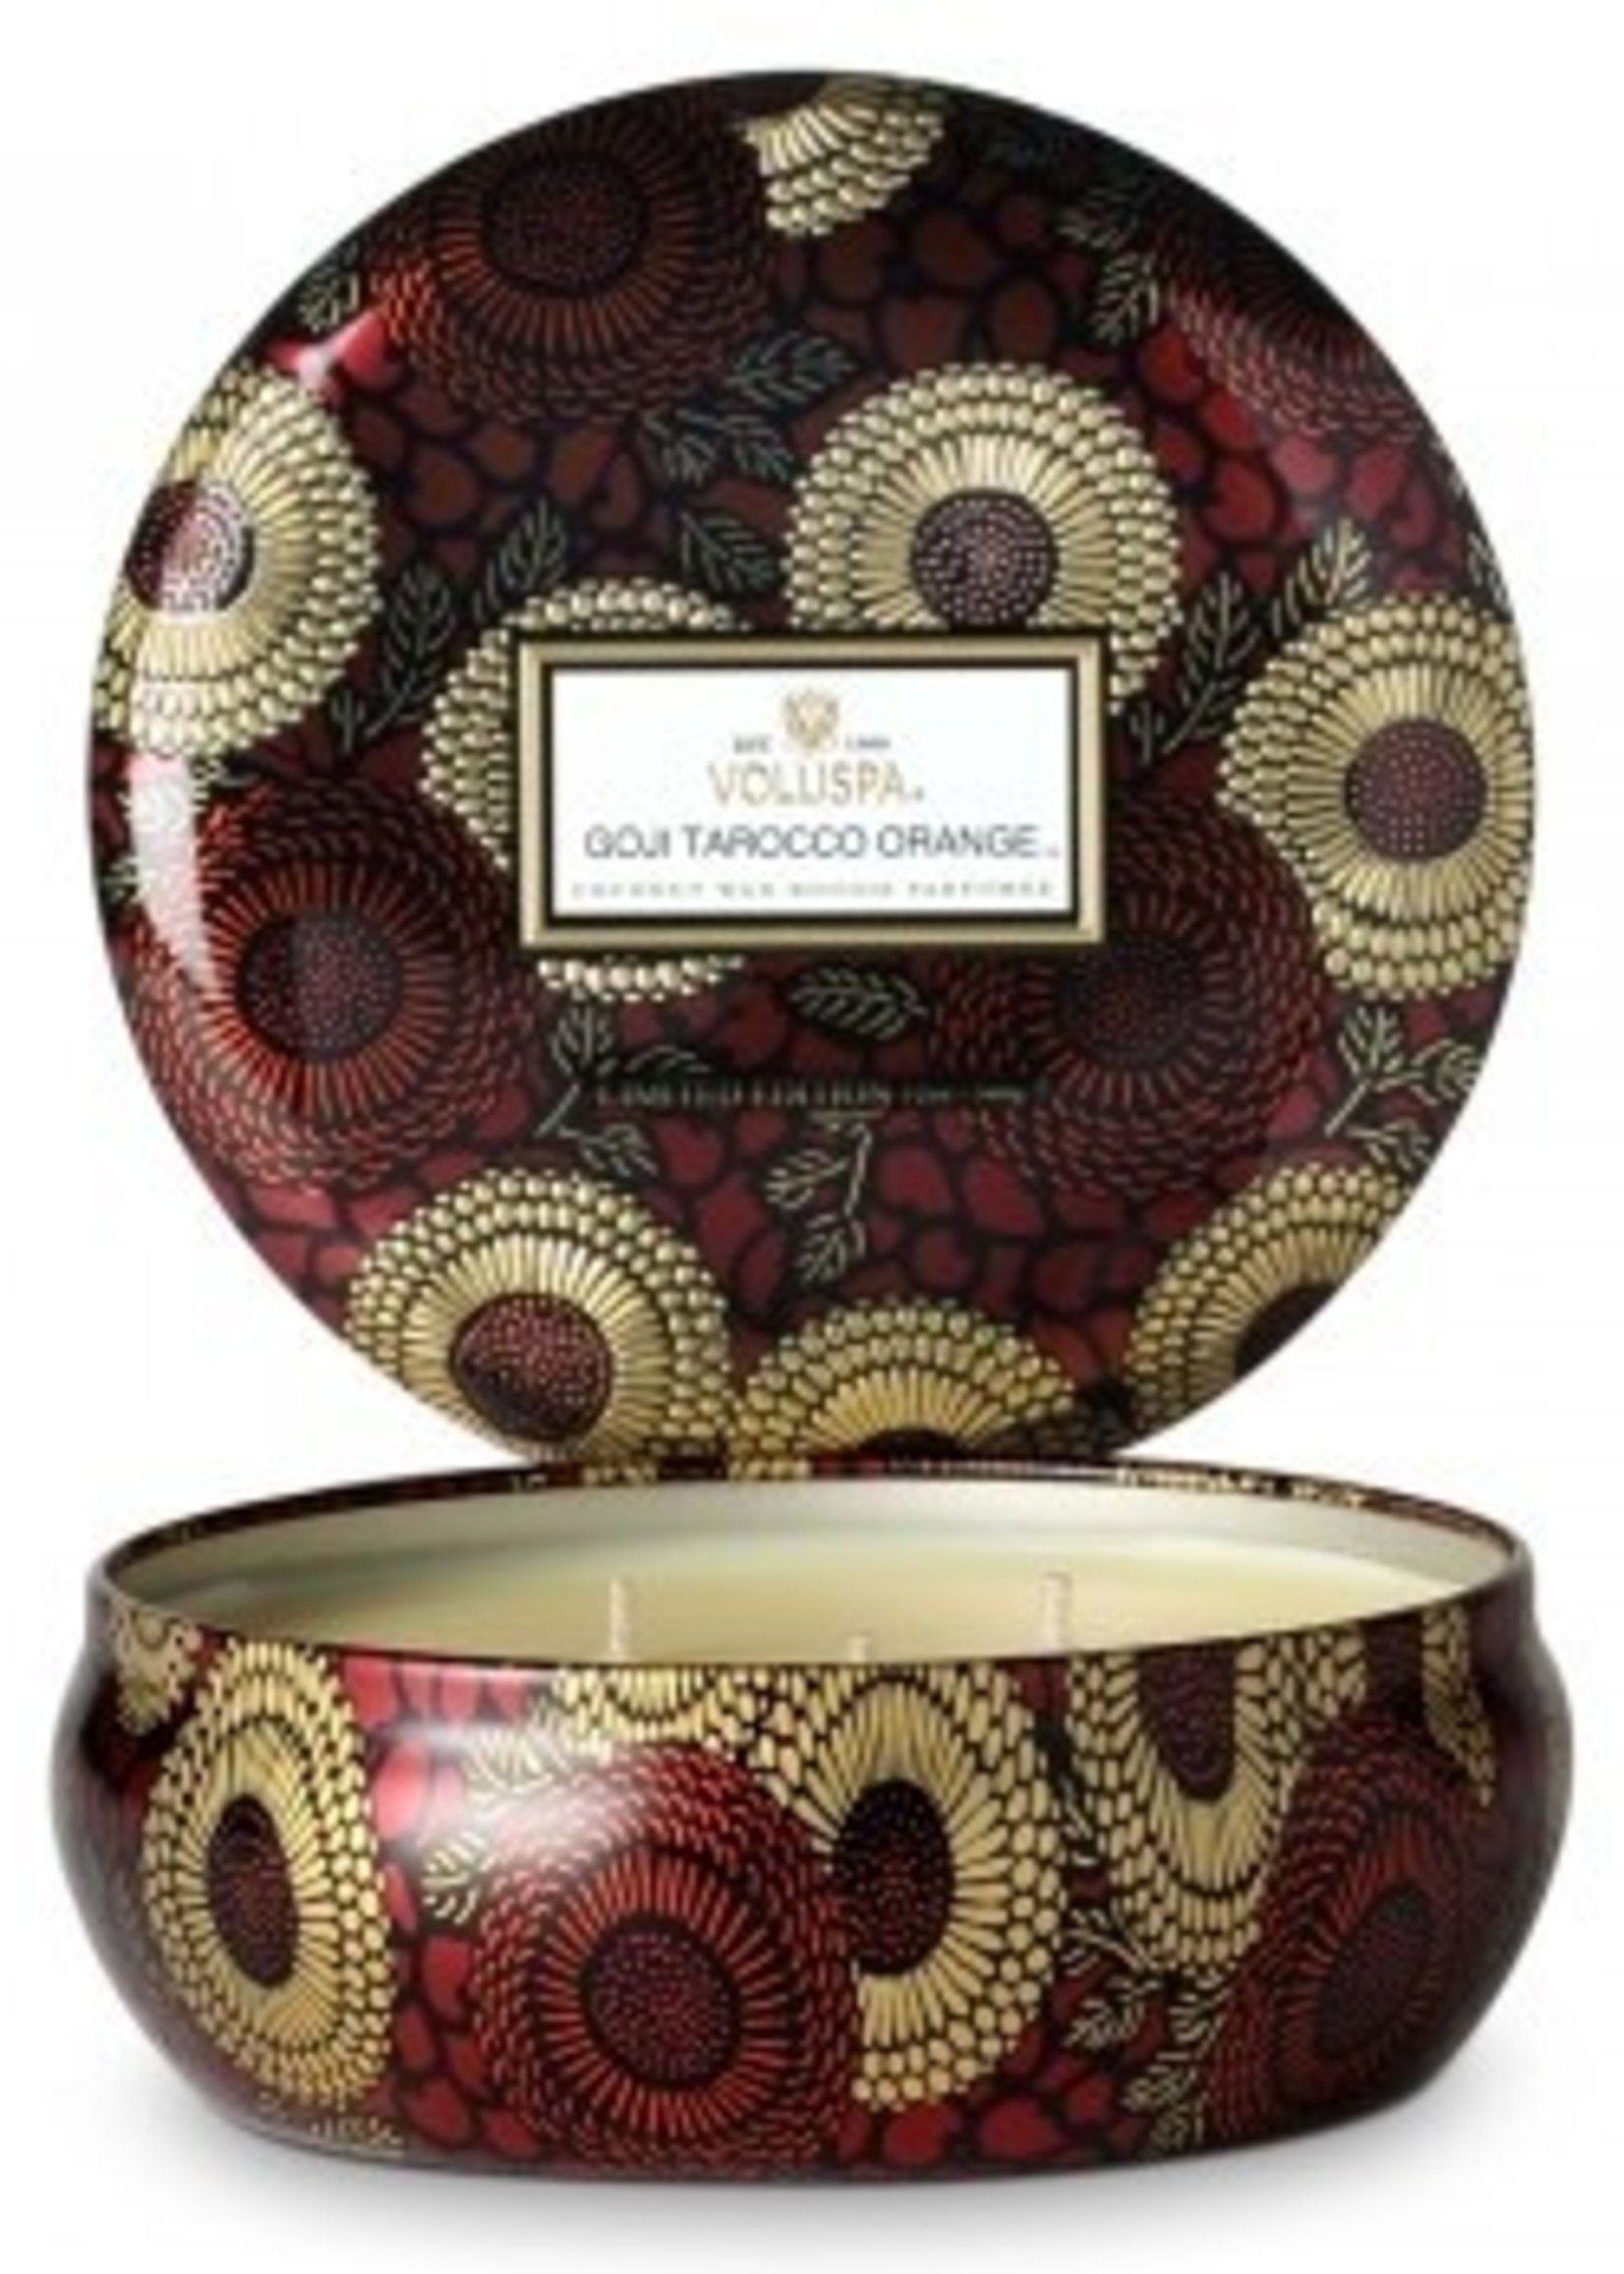 voluspa voluspa goji 3 wick tin candle